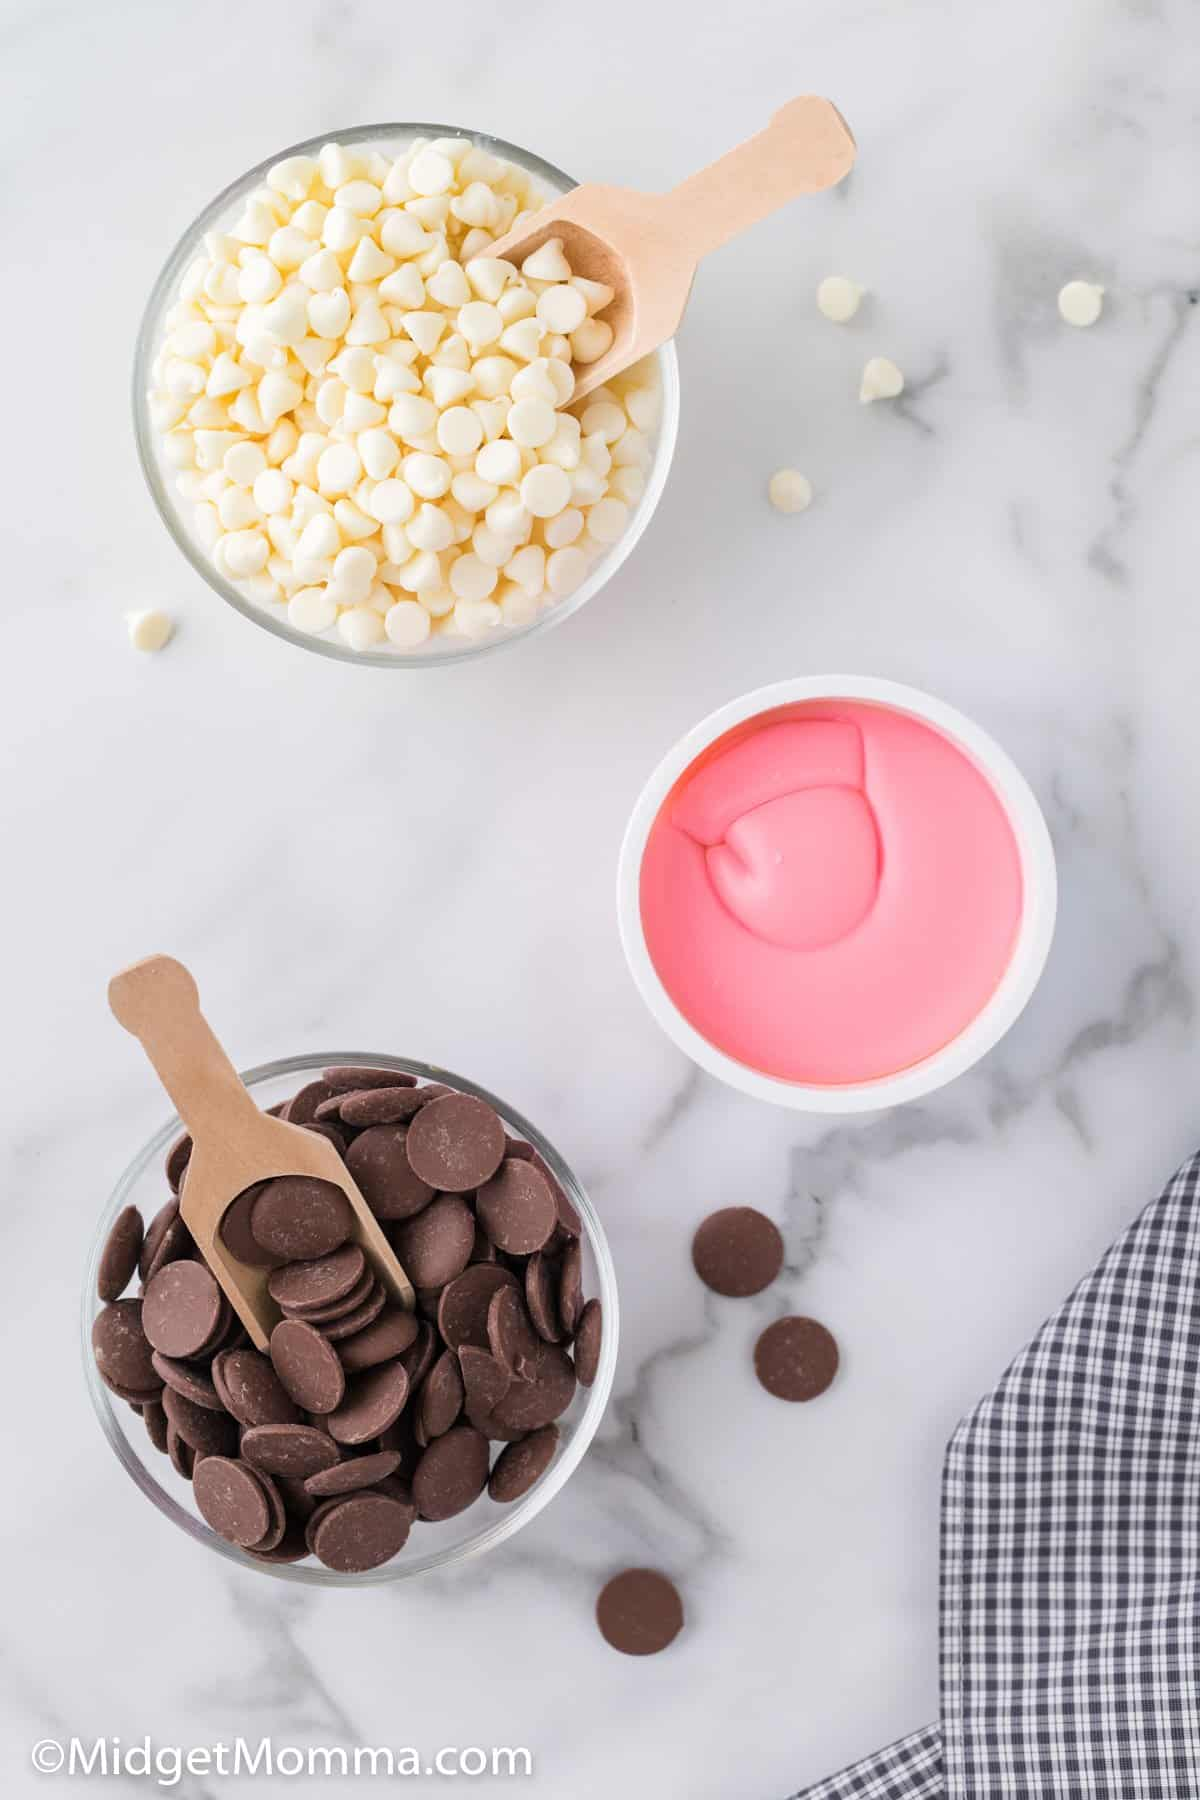 Strawberry Chocolate Creams ingredients